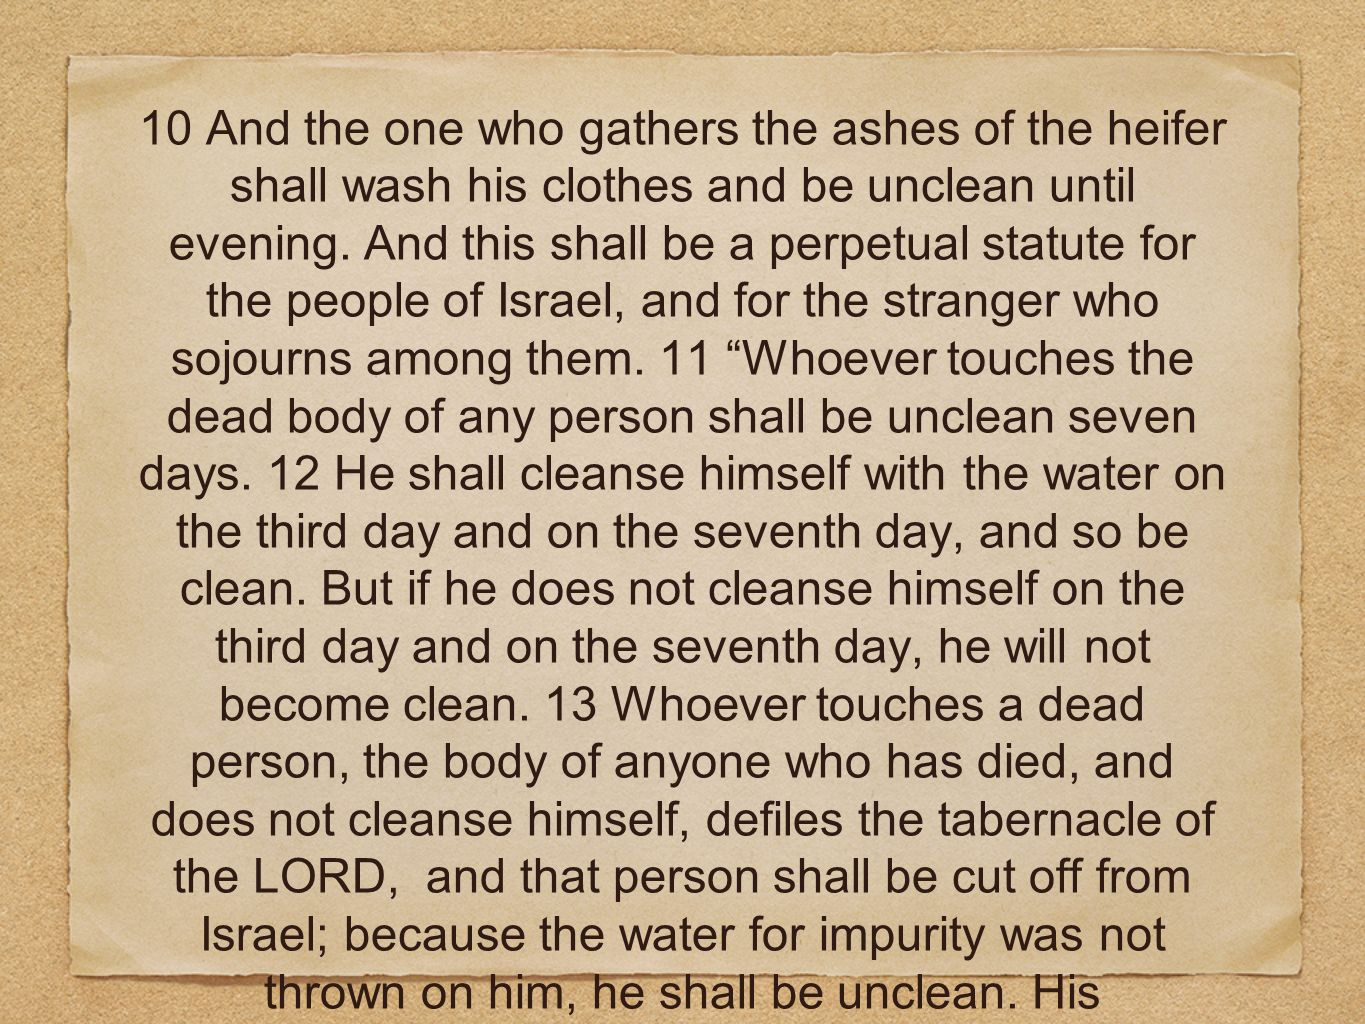 10 And the one who gathers the ashes of the heifer shall wash his clothes and be unclean until evening.